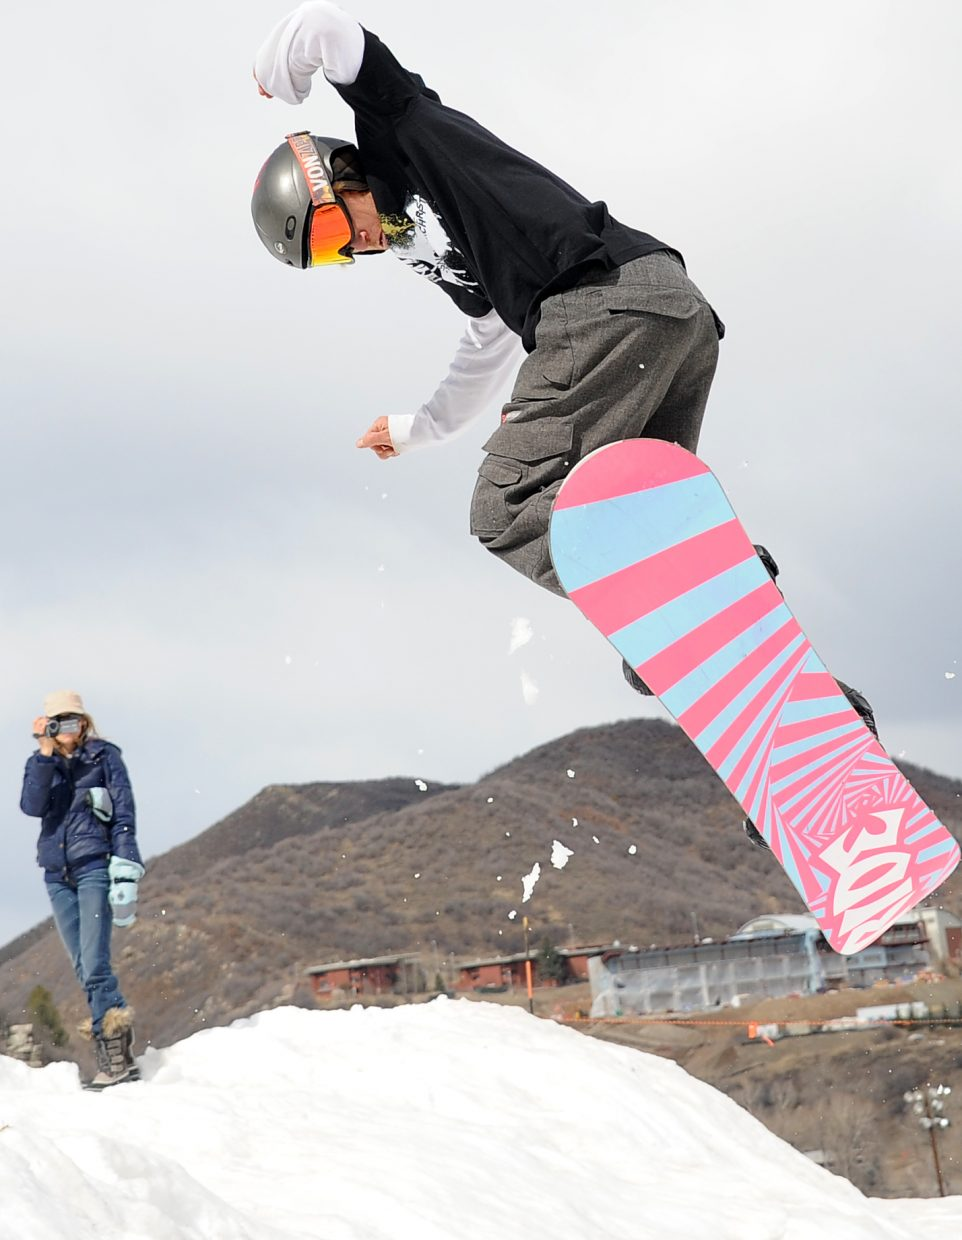 Danny Tebbenkamp gets air during a competition at Howelsen Hill on Sunday.